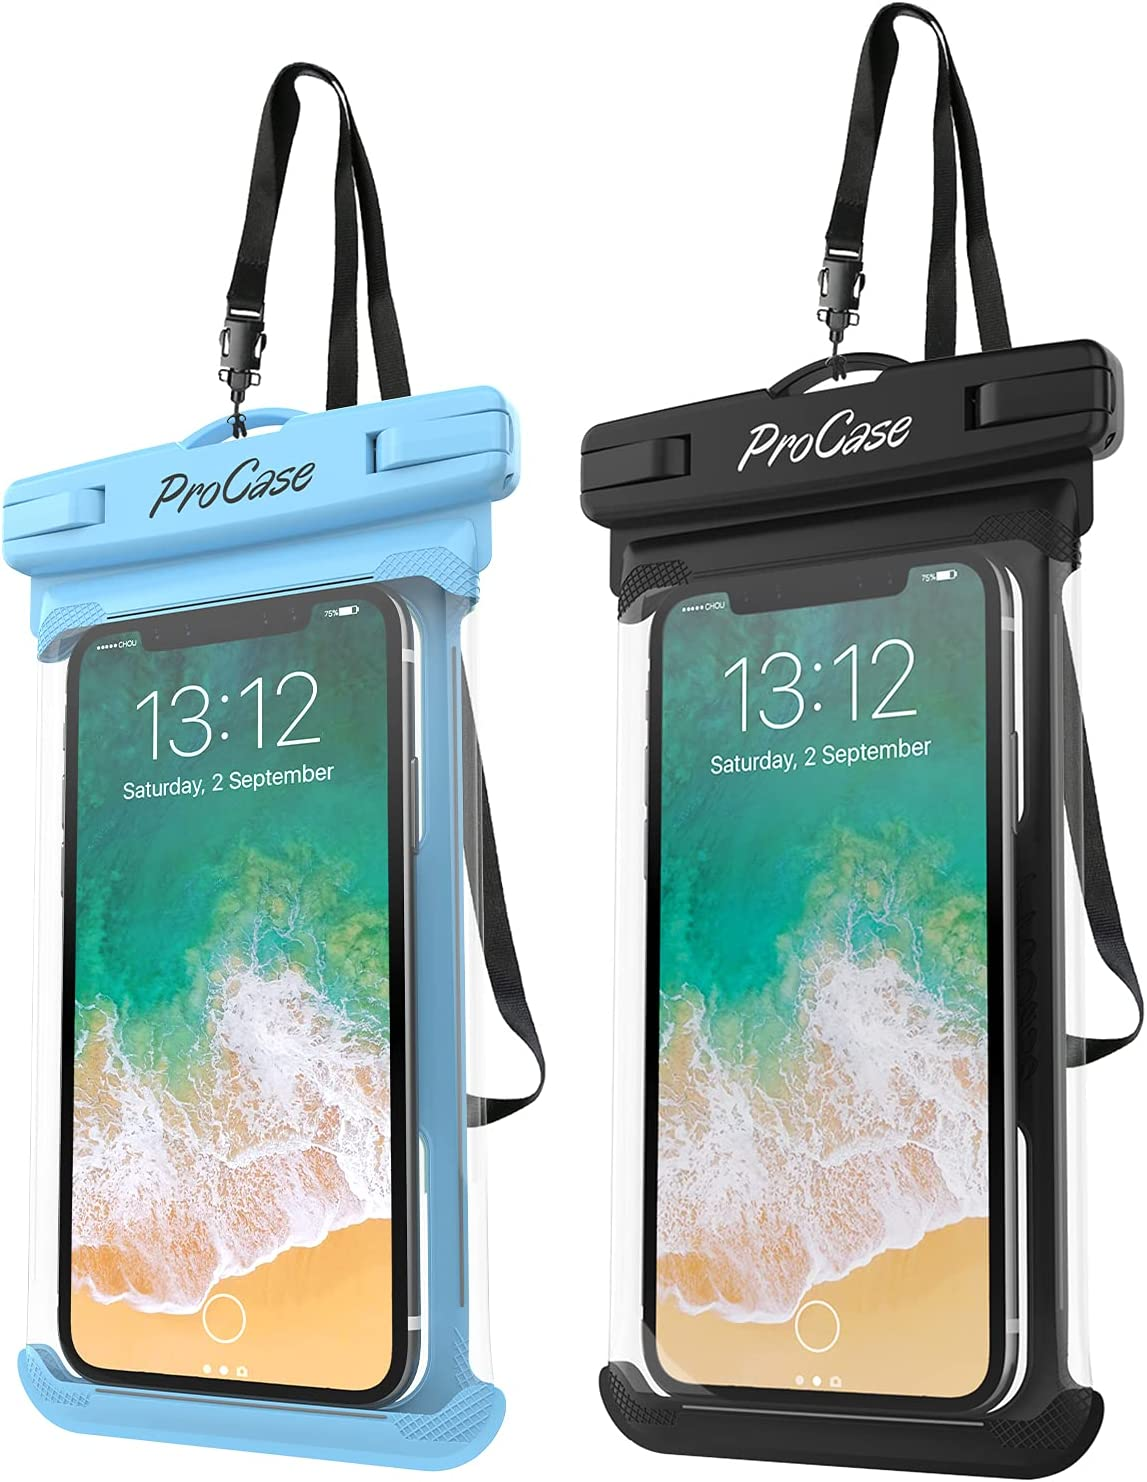 ProCase Universal Waterproof Case Cellphone Dry Bag Pouch for iPhone 12 Pro Max 11 Pro Max Xs Max XR XS X 8 7 6S Plus SE 2020, Galaxy S20 Ultra S10 S9 S8/Note 10 9 up to 7